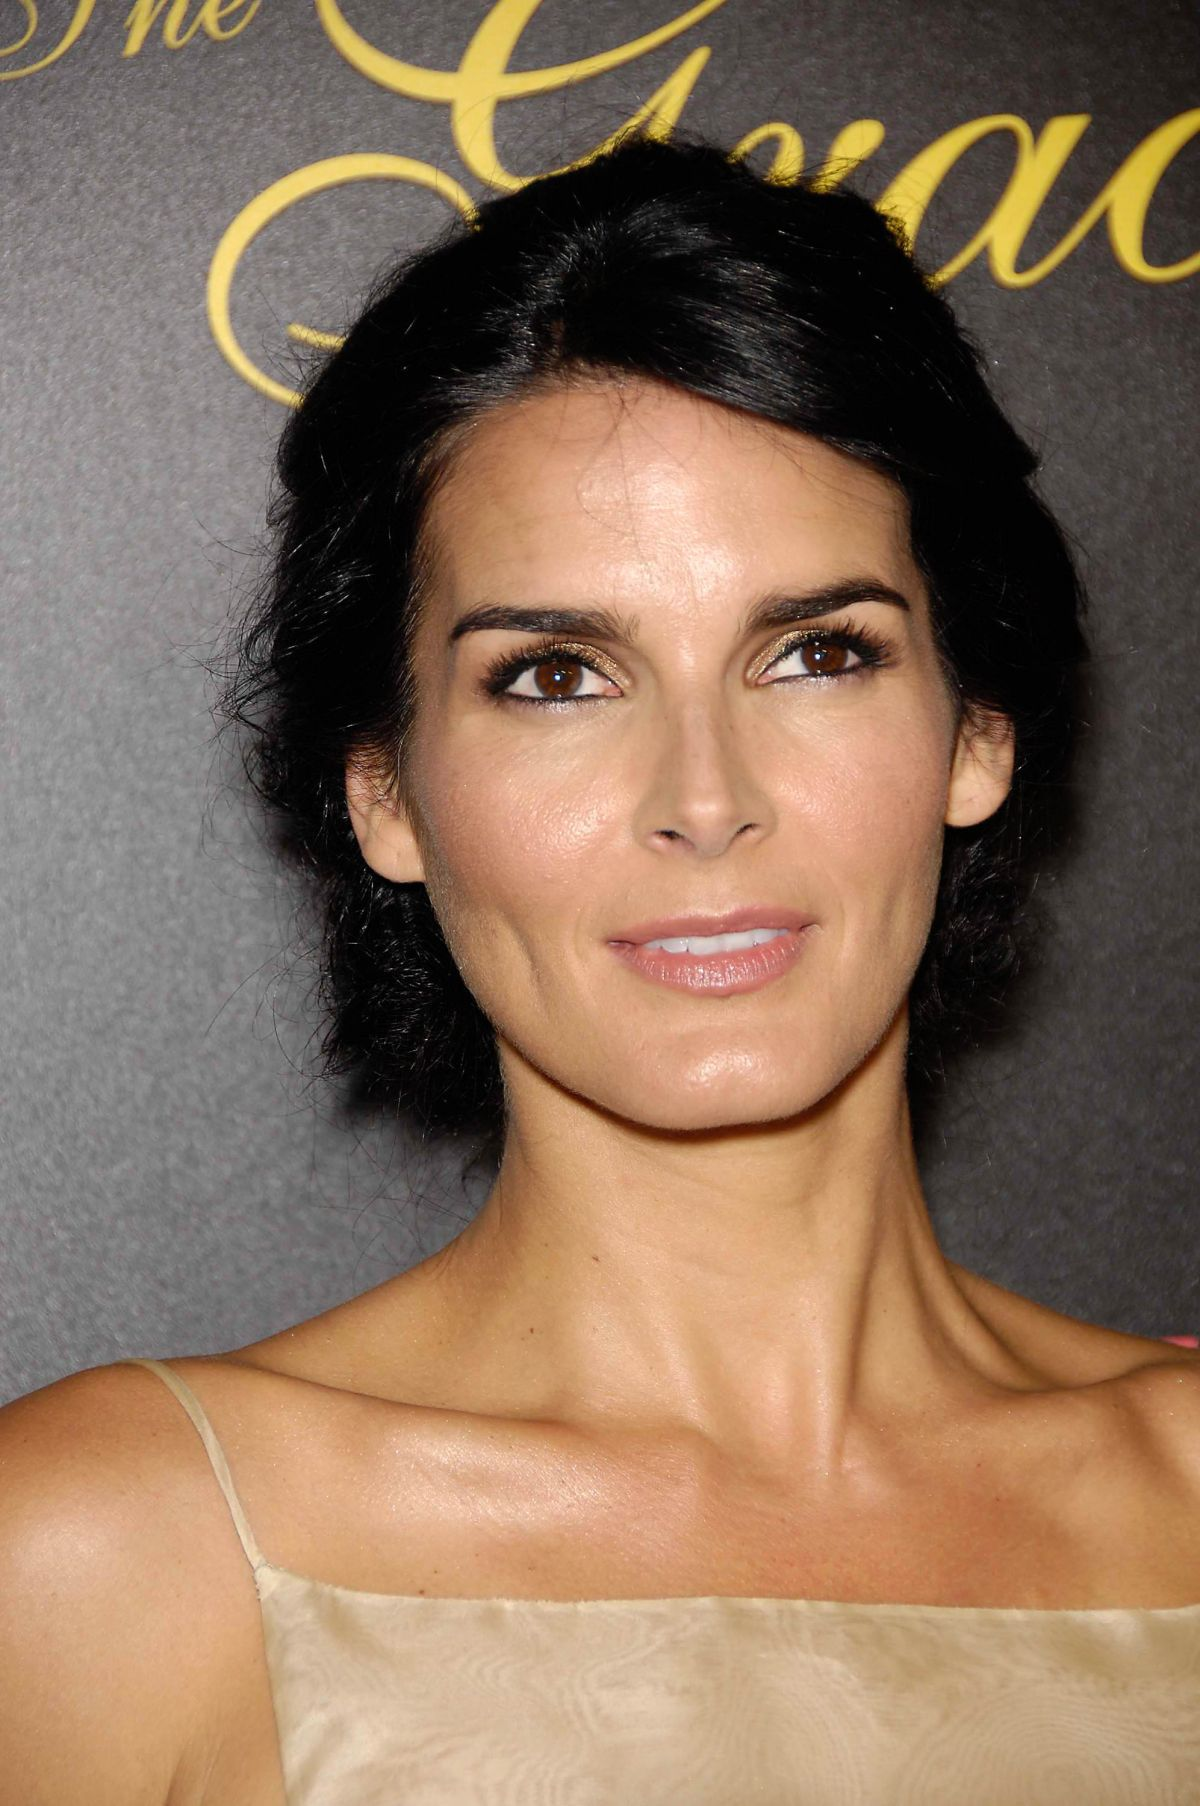 how to transfer photos from iphone to pc angie harmon hd iphone 1806